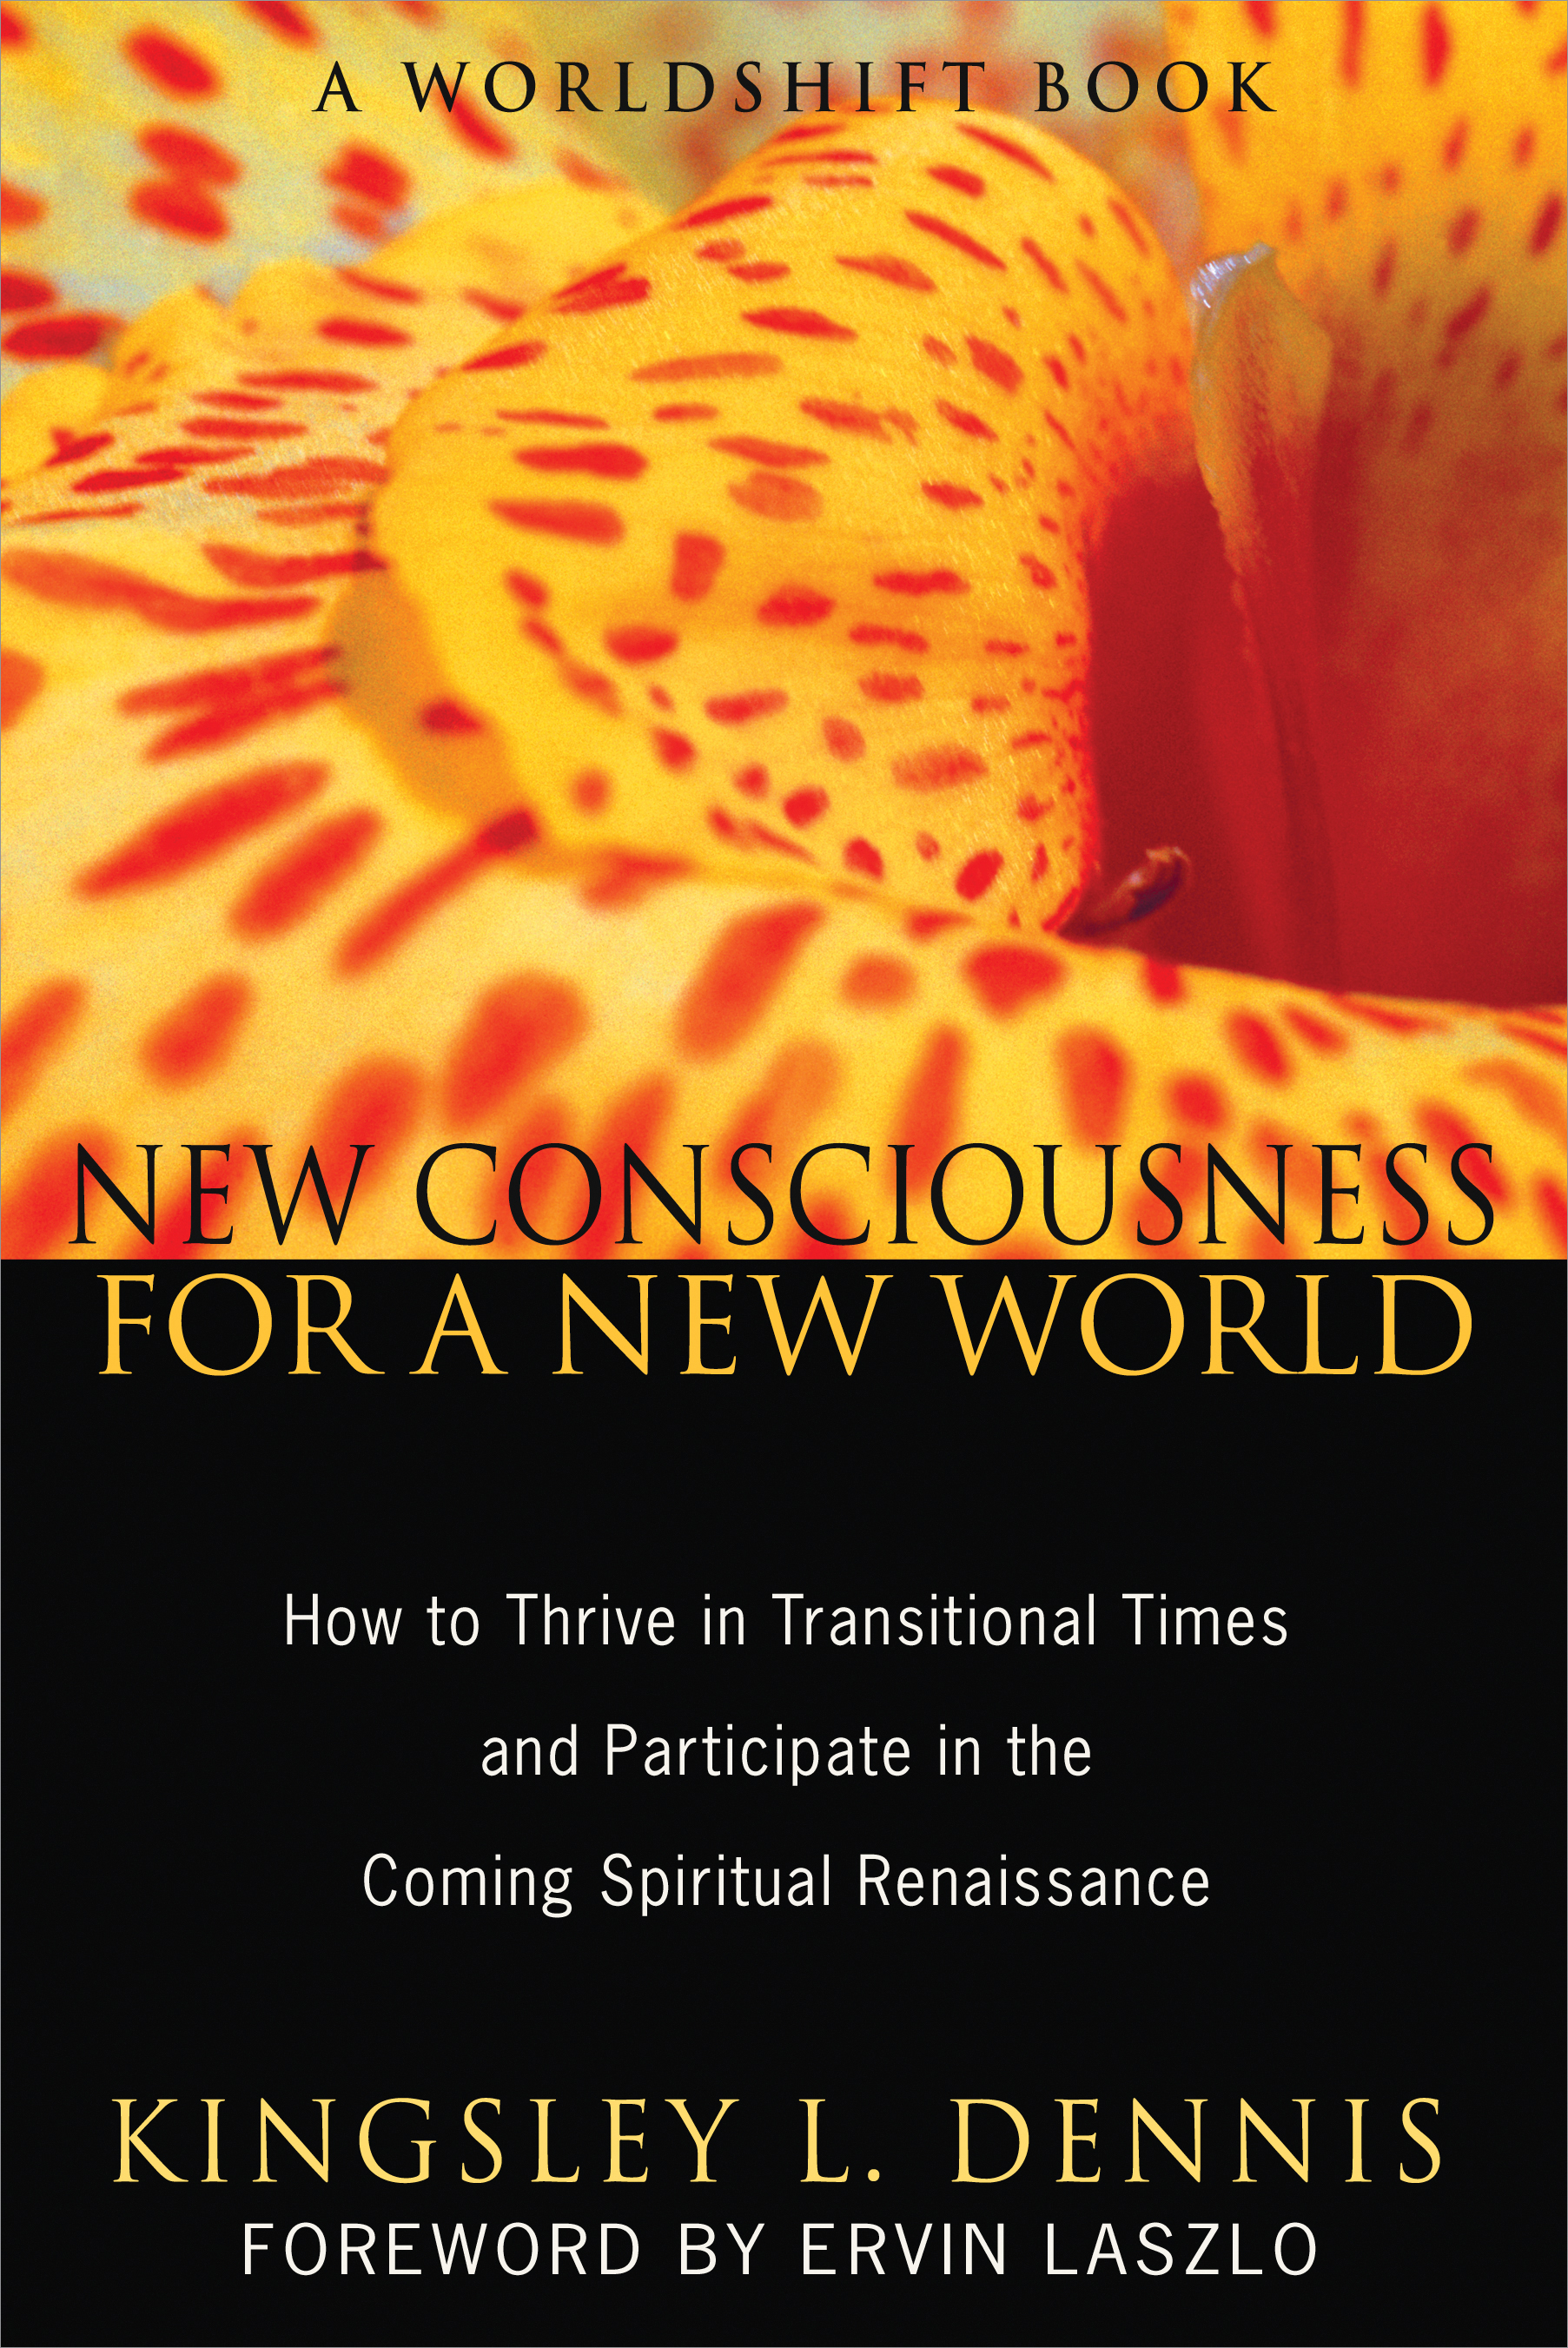 New Consciousness for a New World